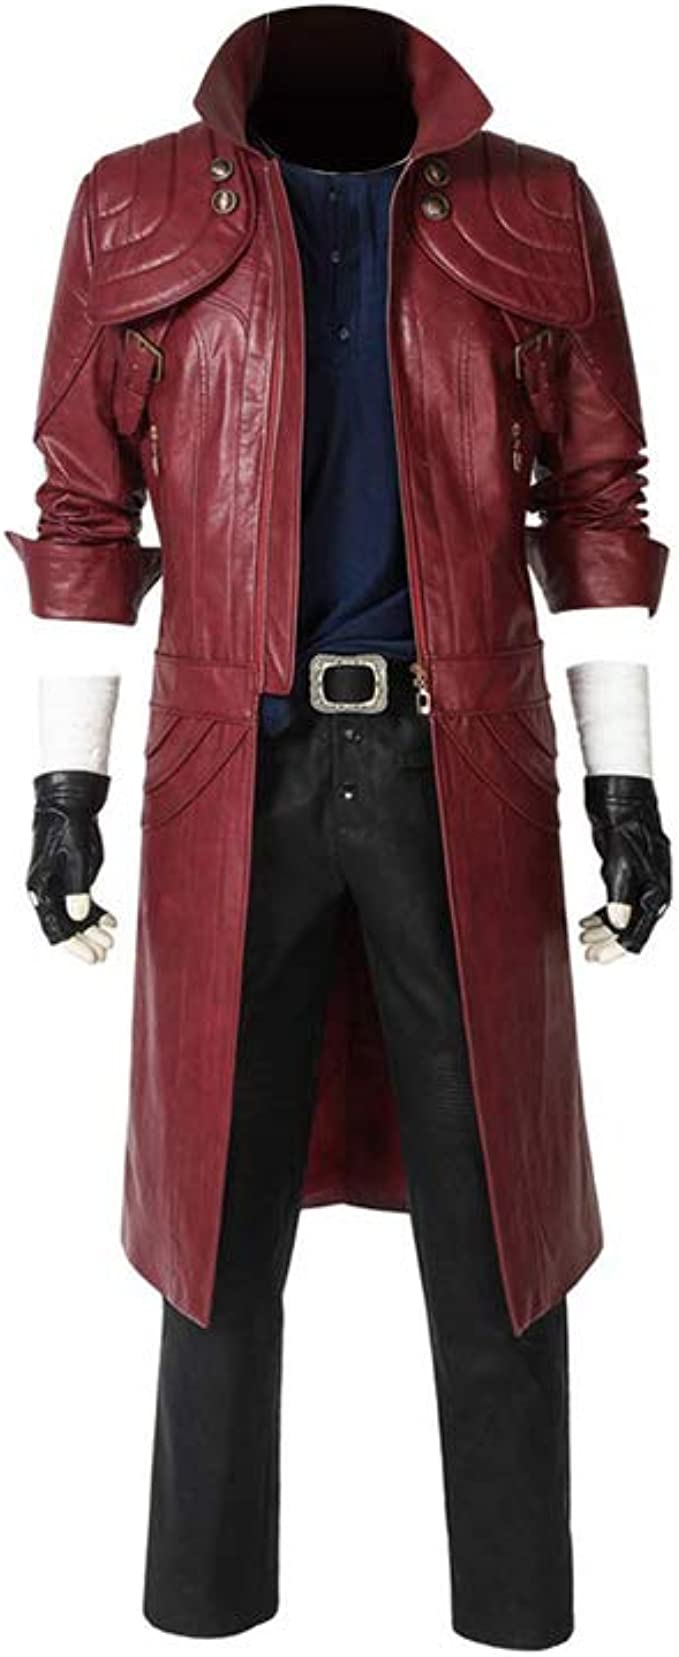 Coskey Devil May Cry 5 Dante Cosplay Costume Outfit Dmc